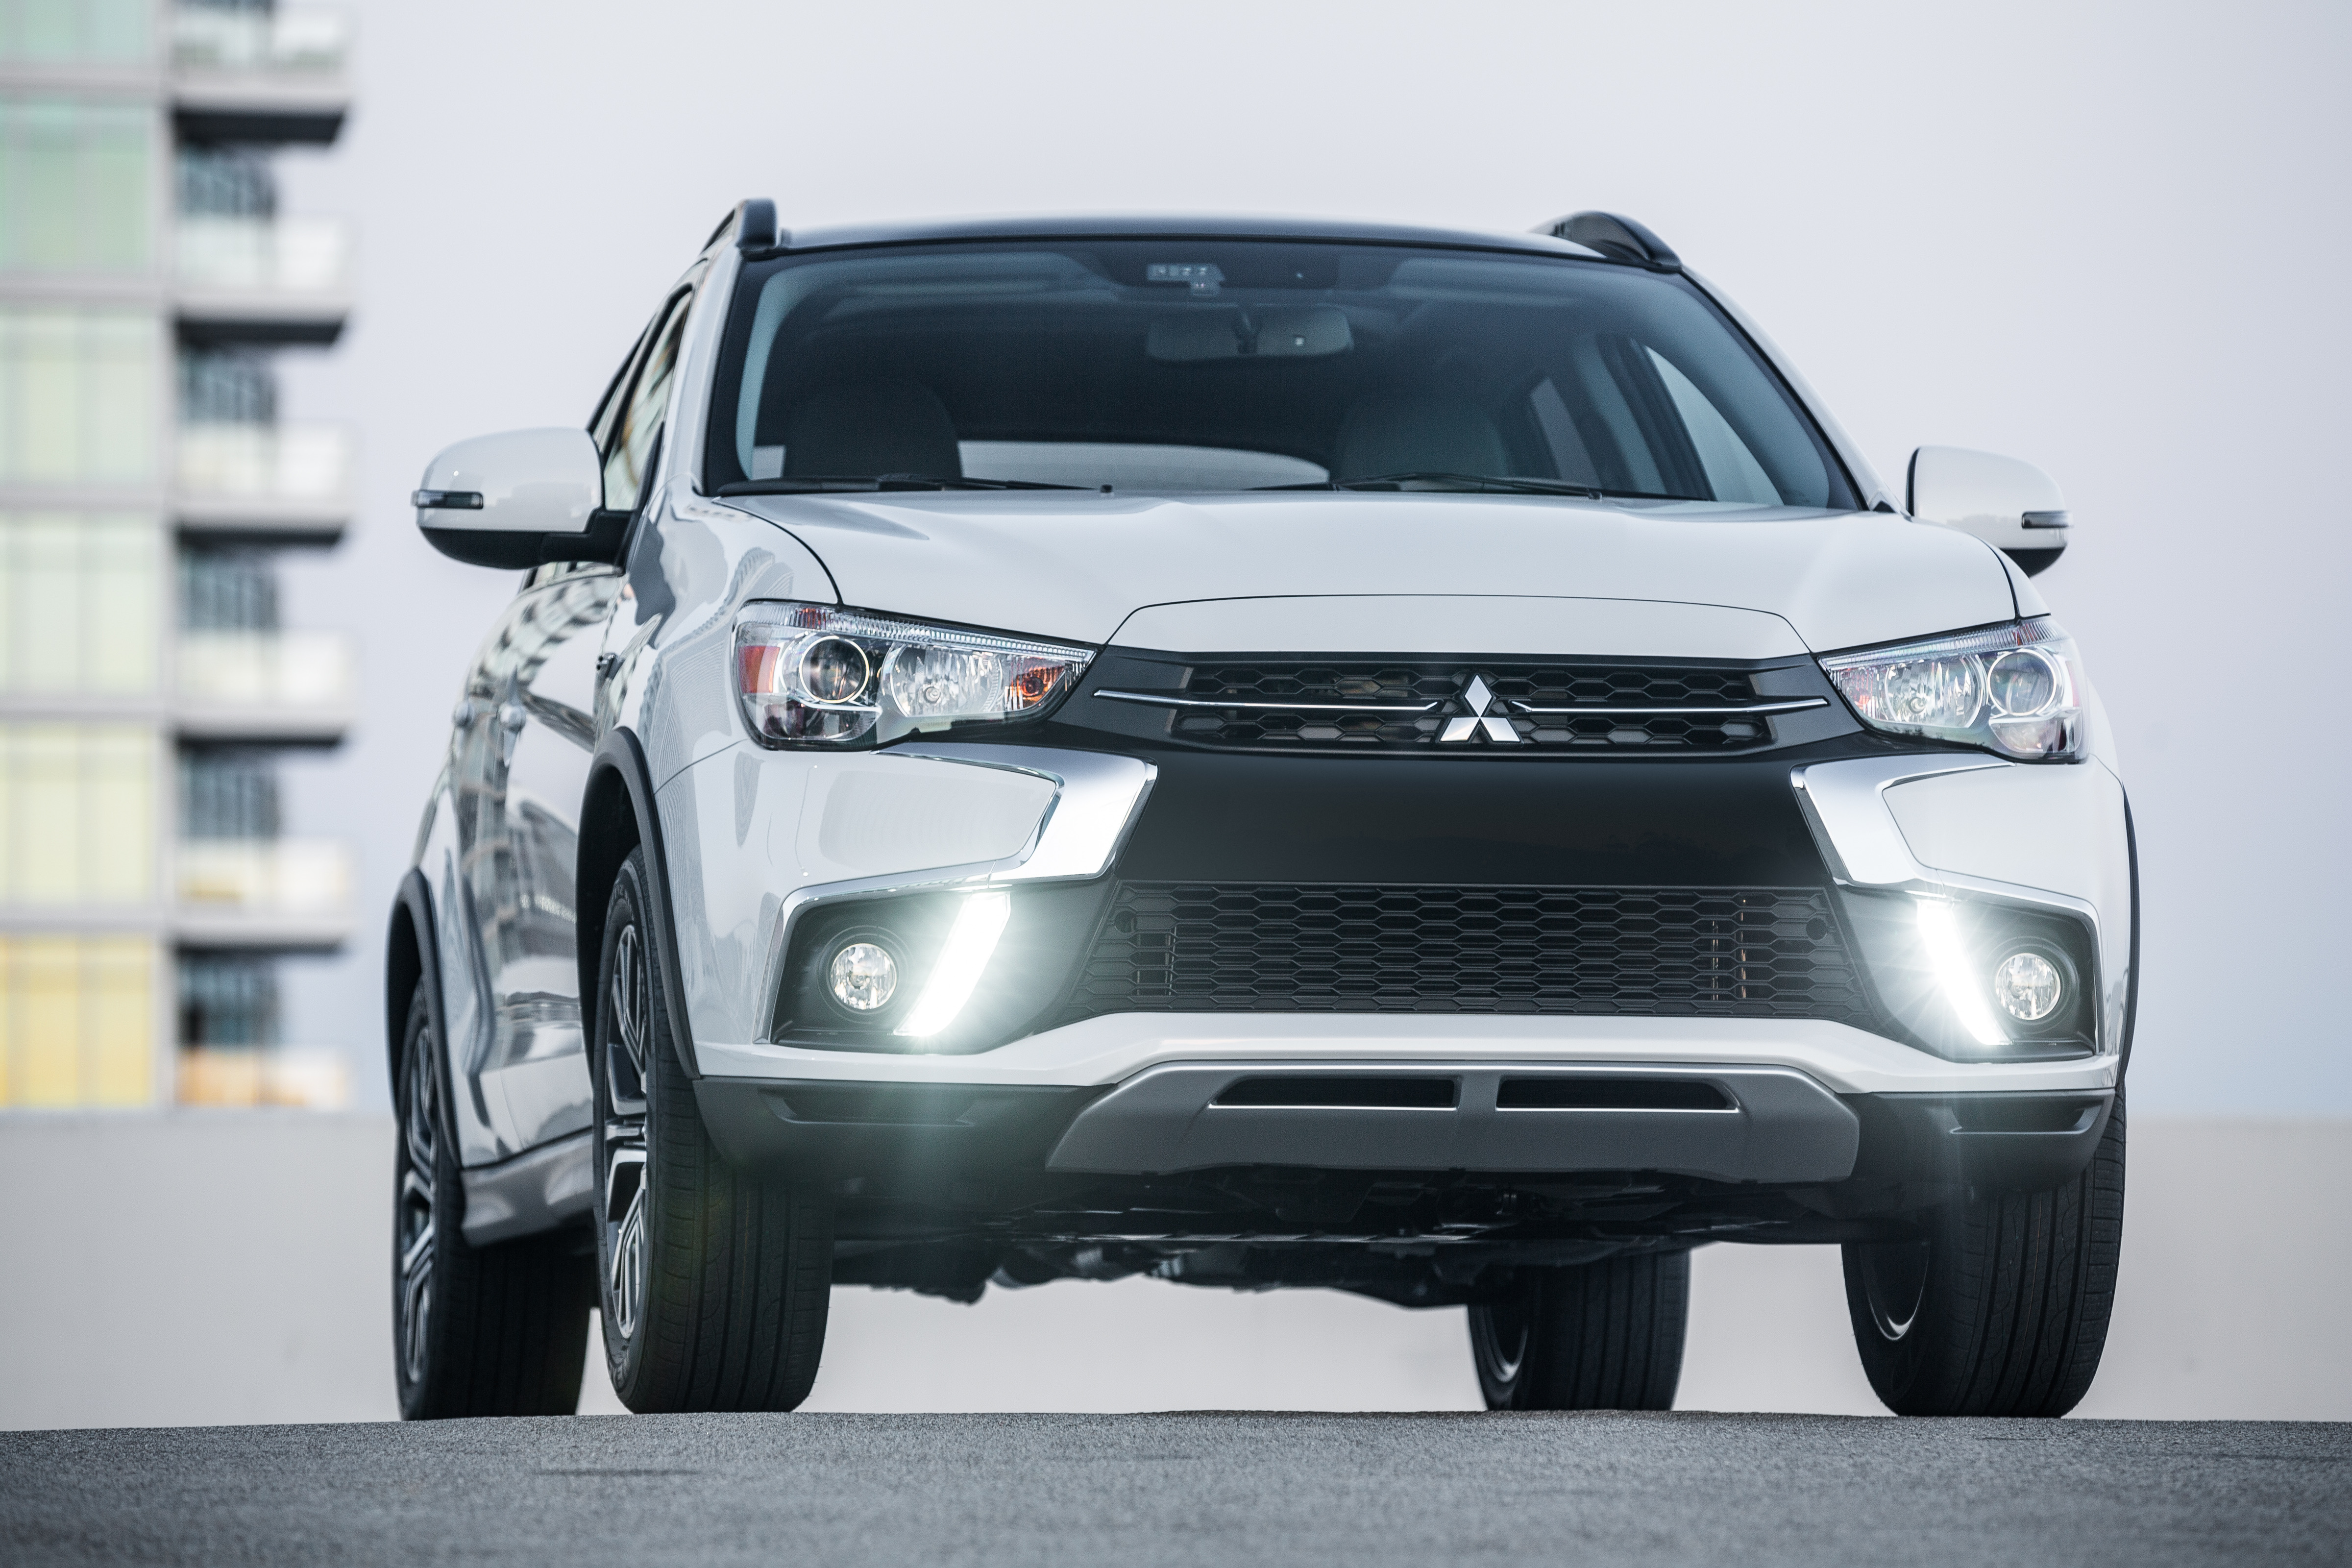 2018 Mitsubishi Outlander: The king of cross over vehicles